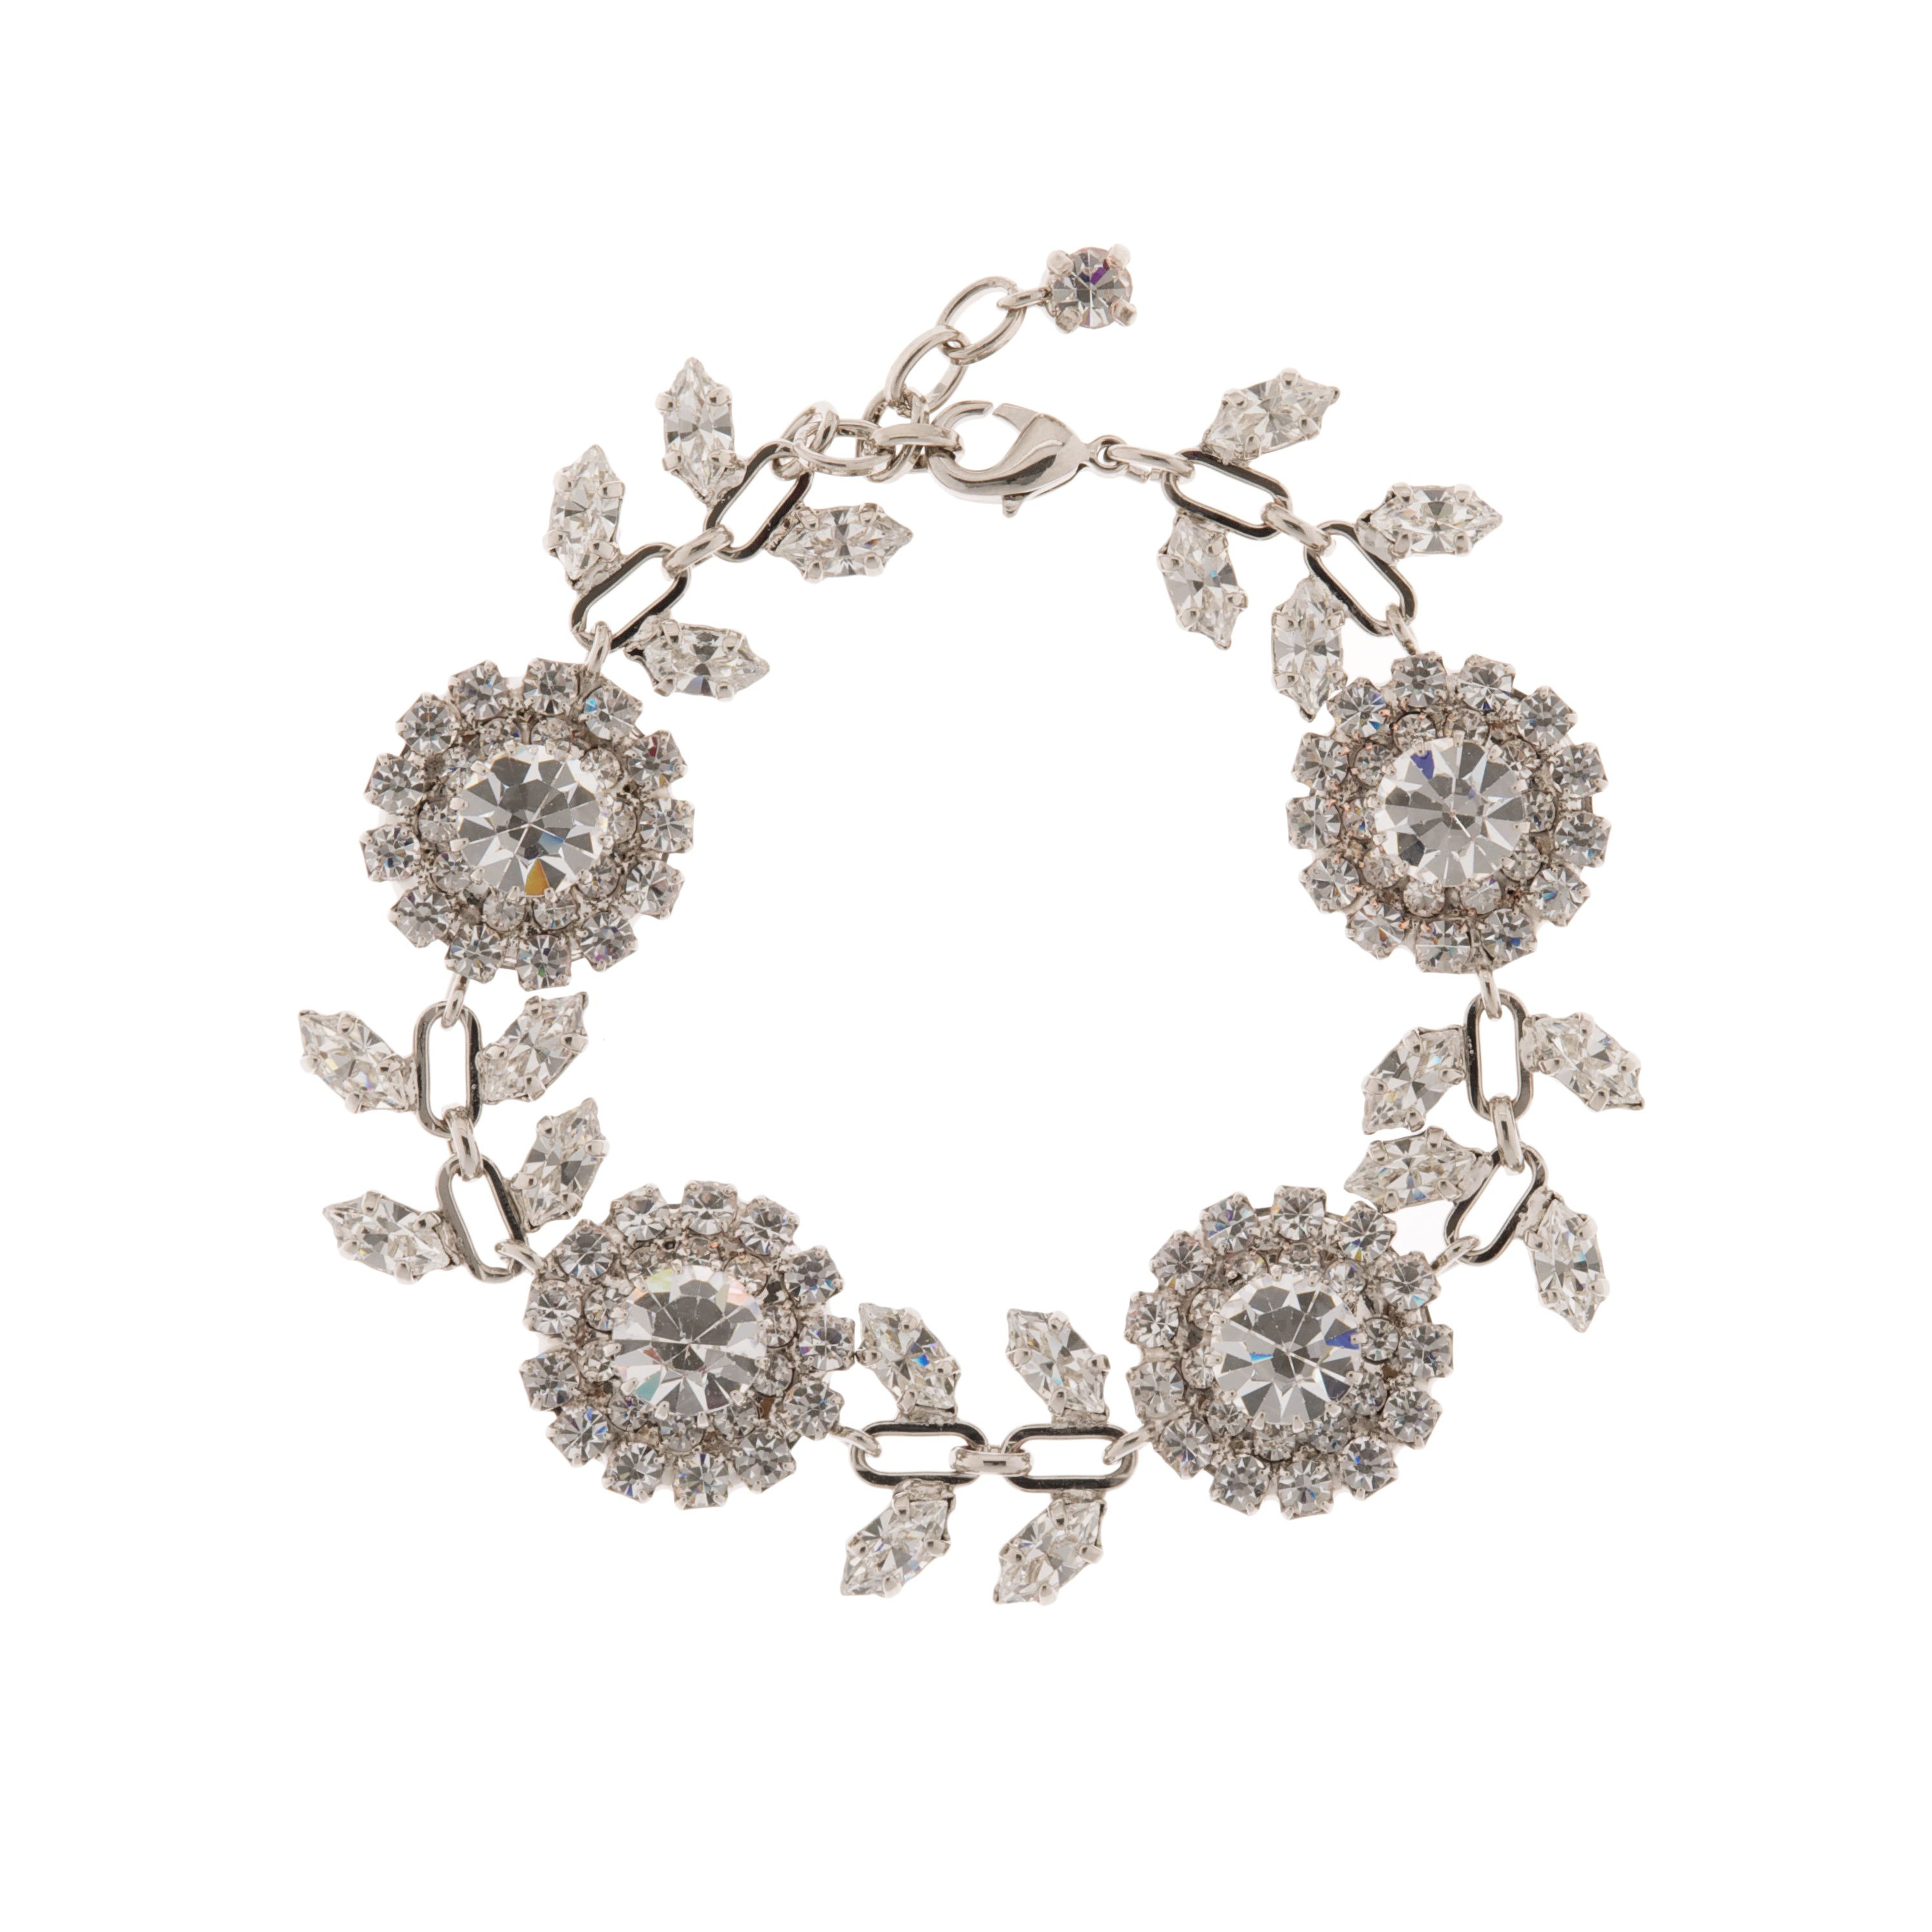 Bridal rose and petal crystal bracelet